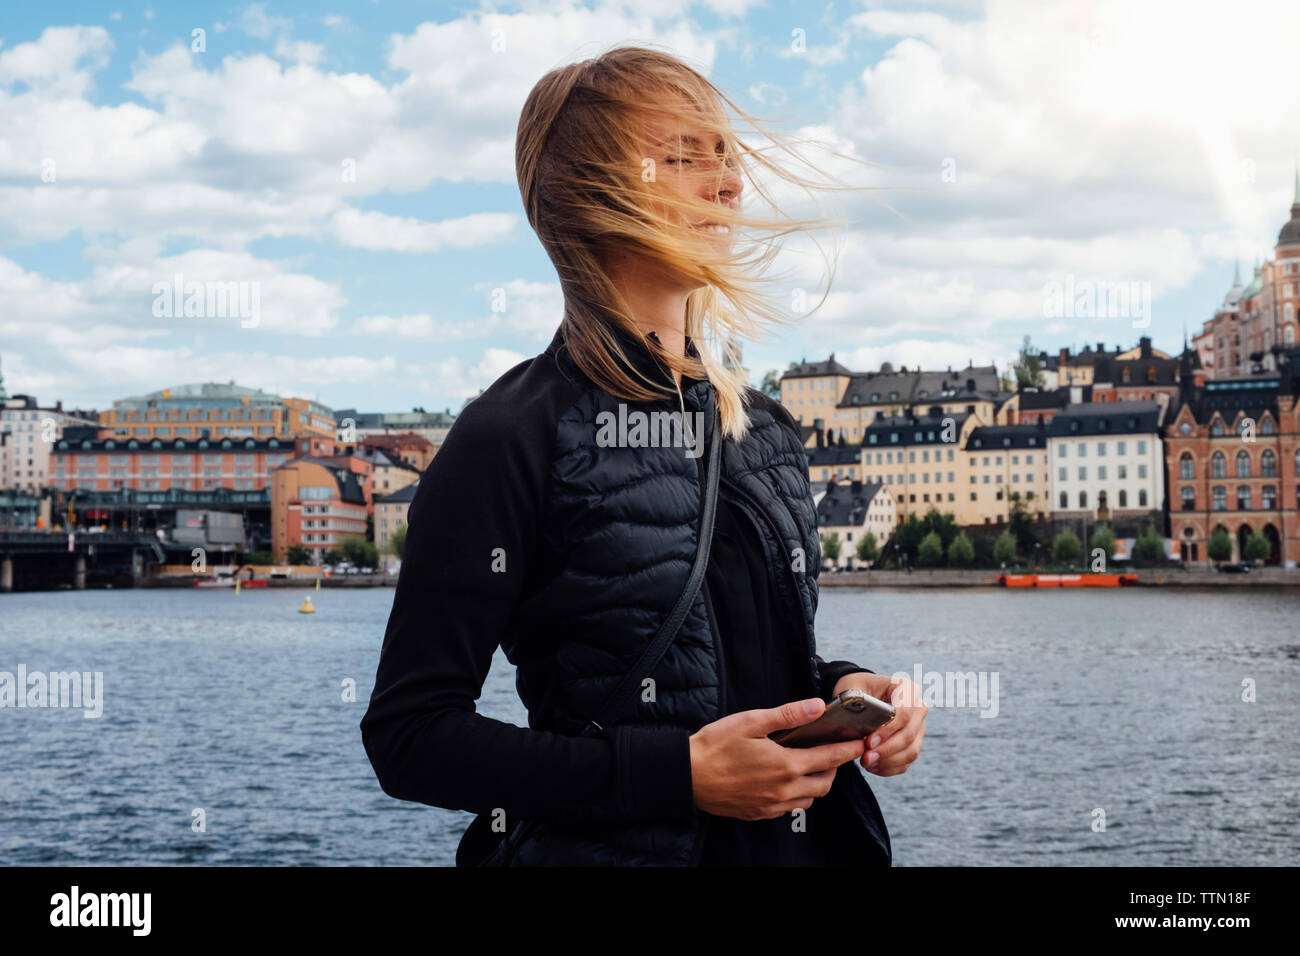 Smiling young woman with tousled hair standing by river in city - Stock Image